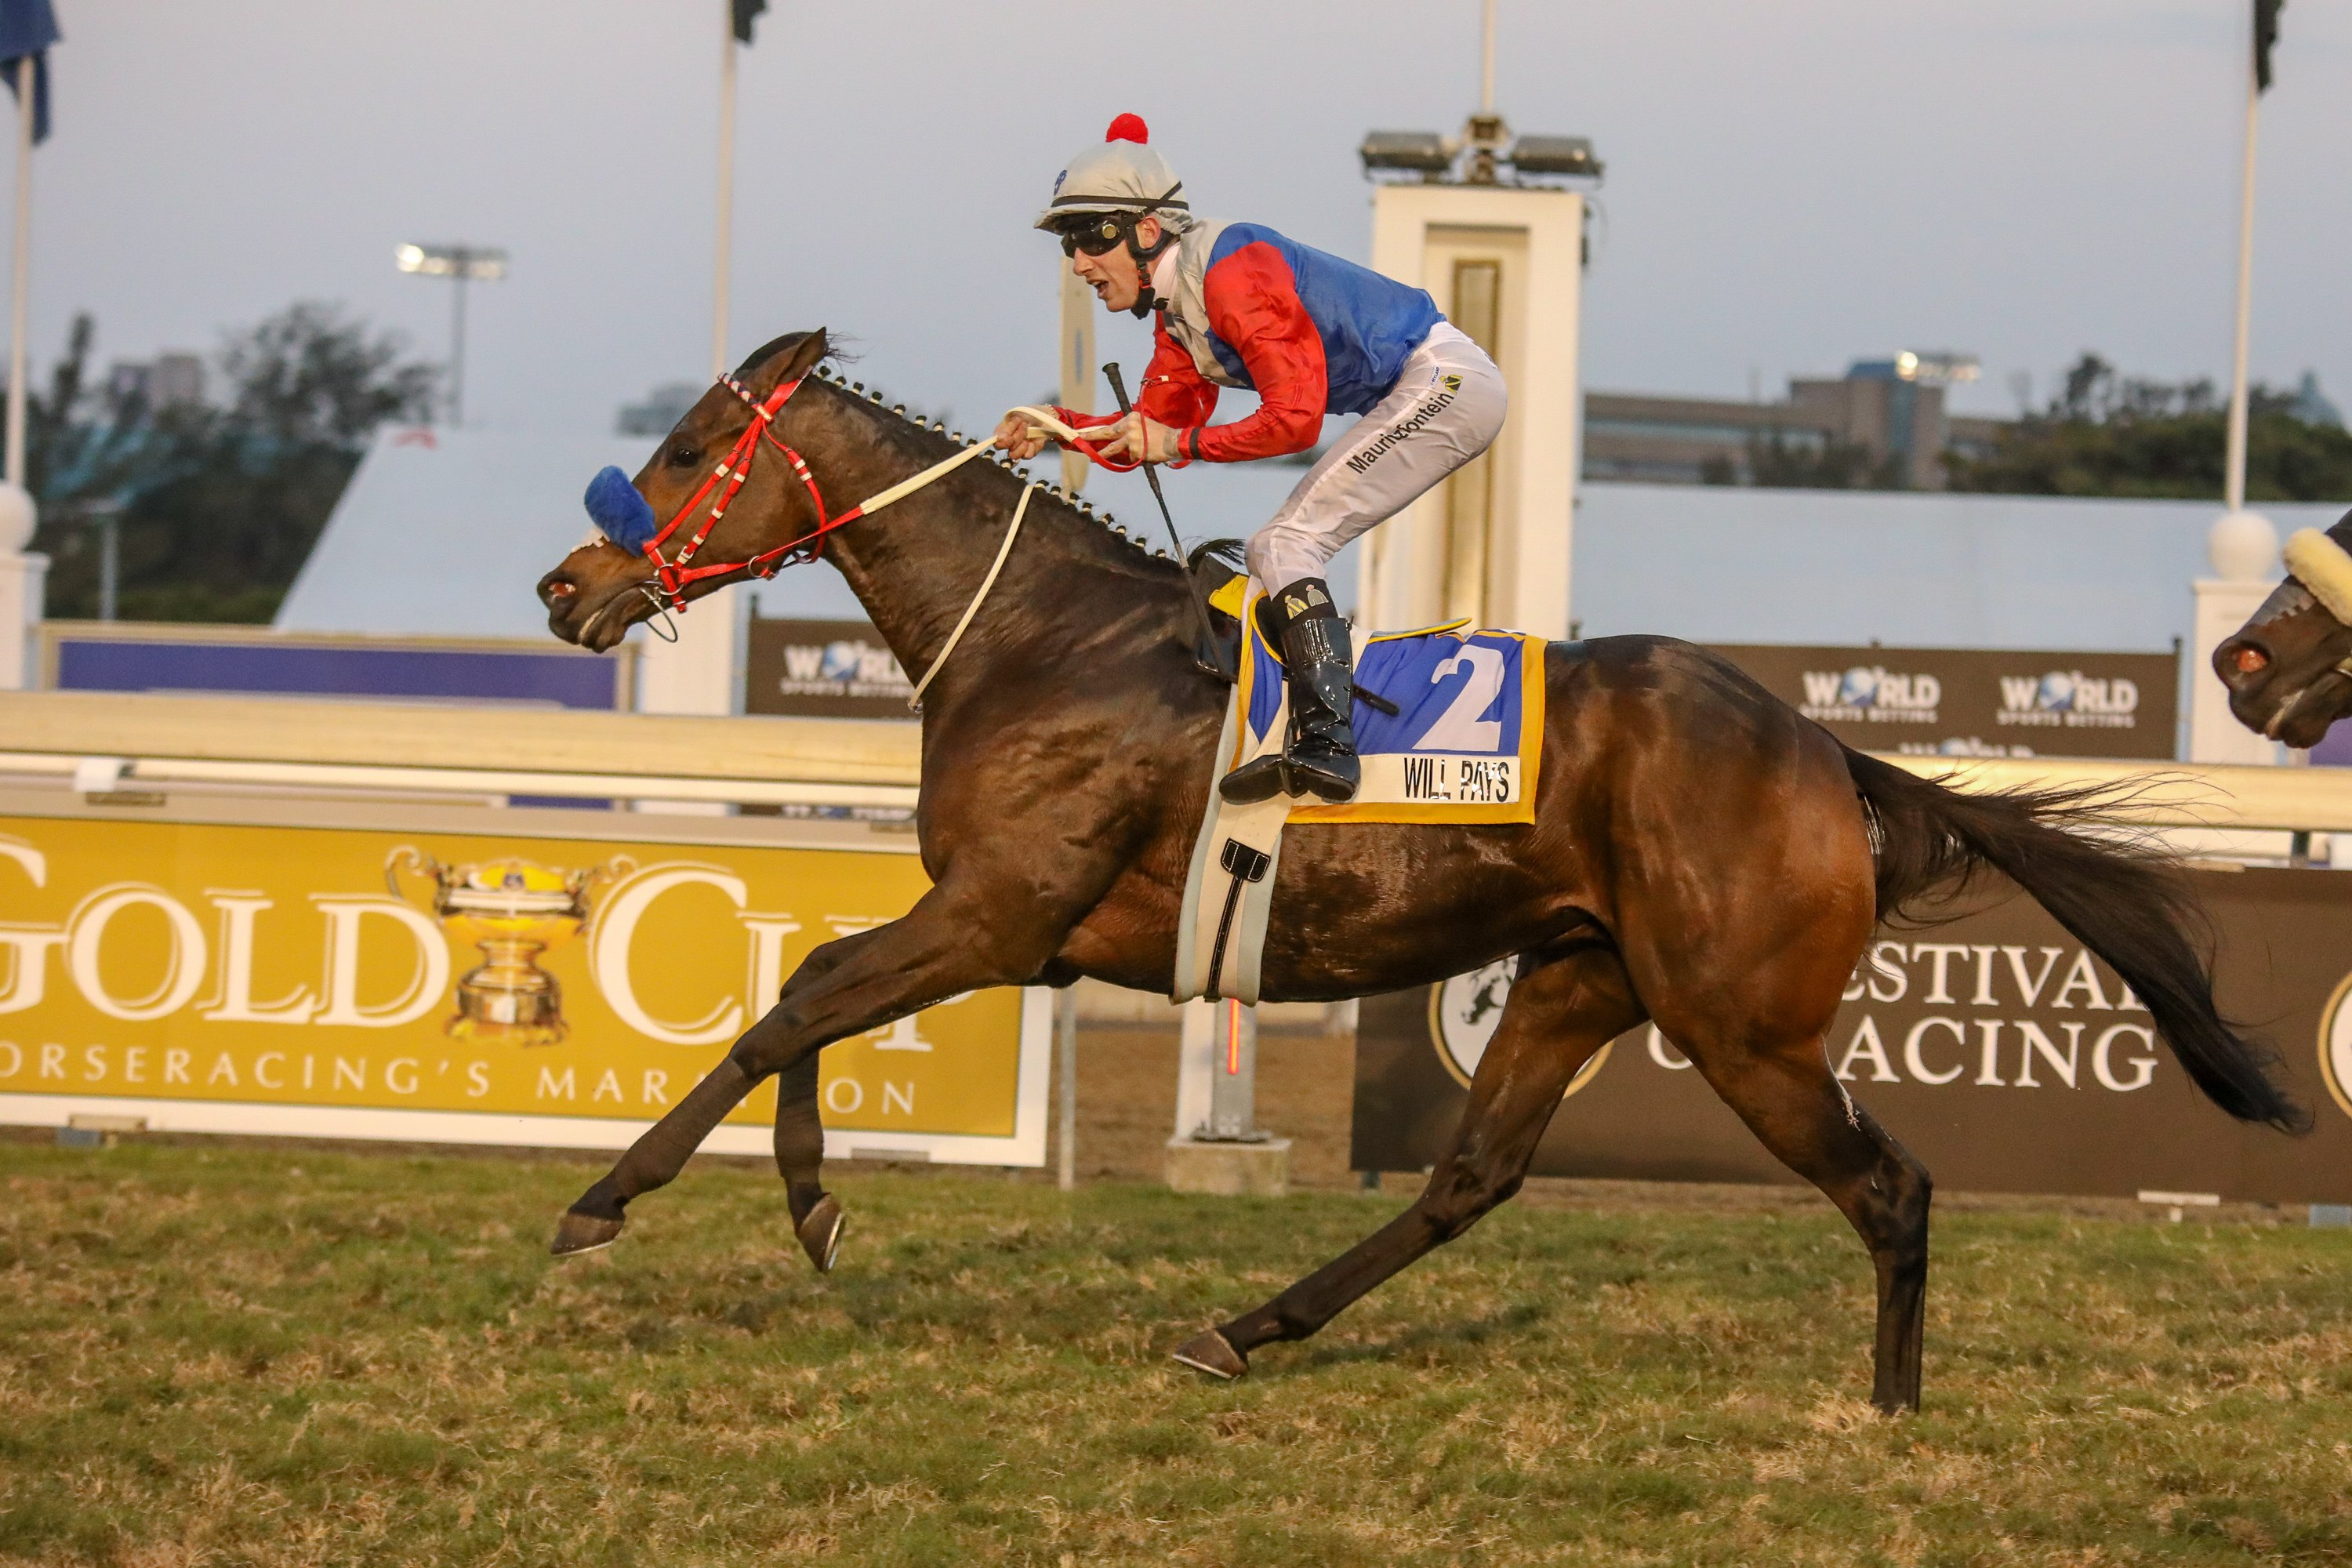 Will Pays, a half-brother to Rathmor Stud broodmare Rattled, wins the Gr1 Mercury Sprint. Image: Candiese Marnewick